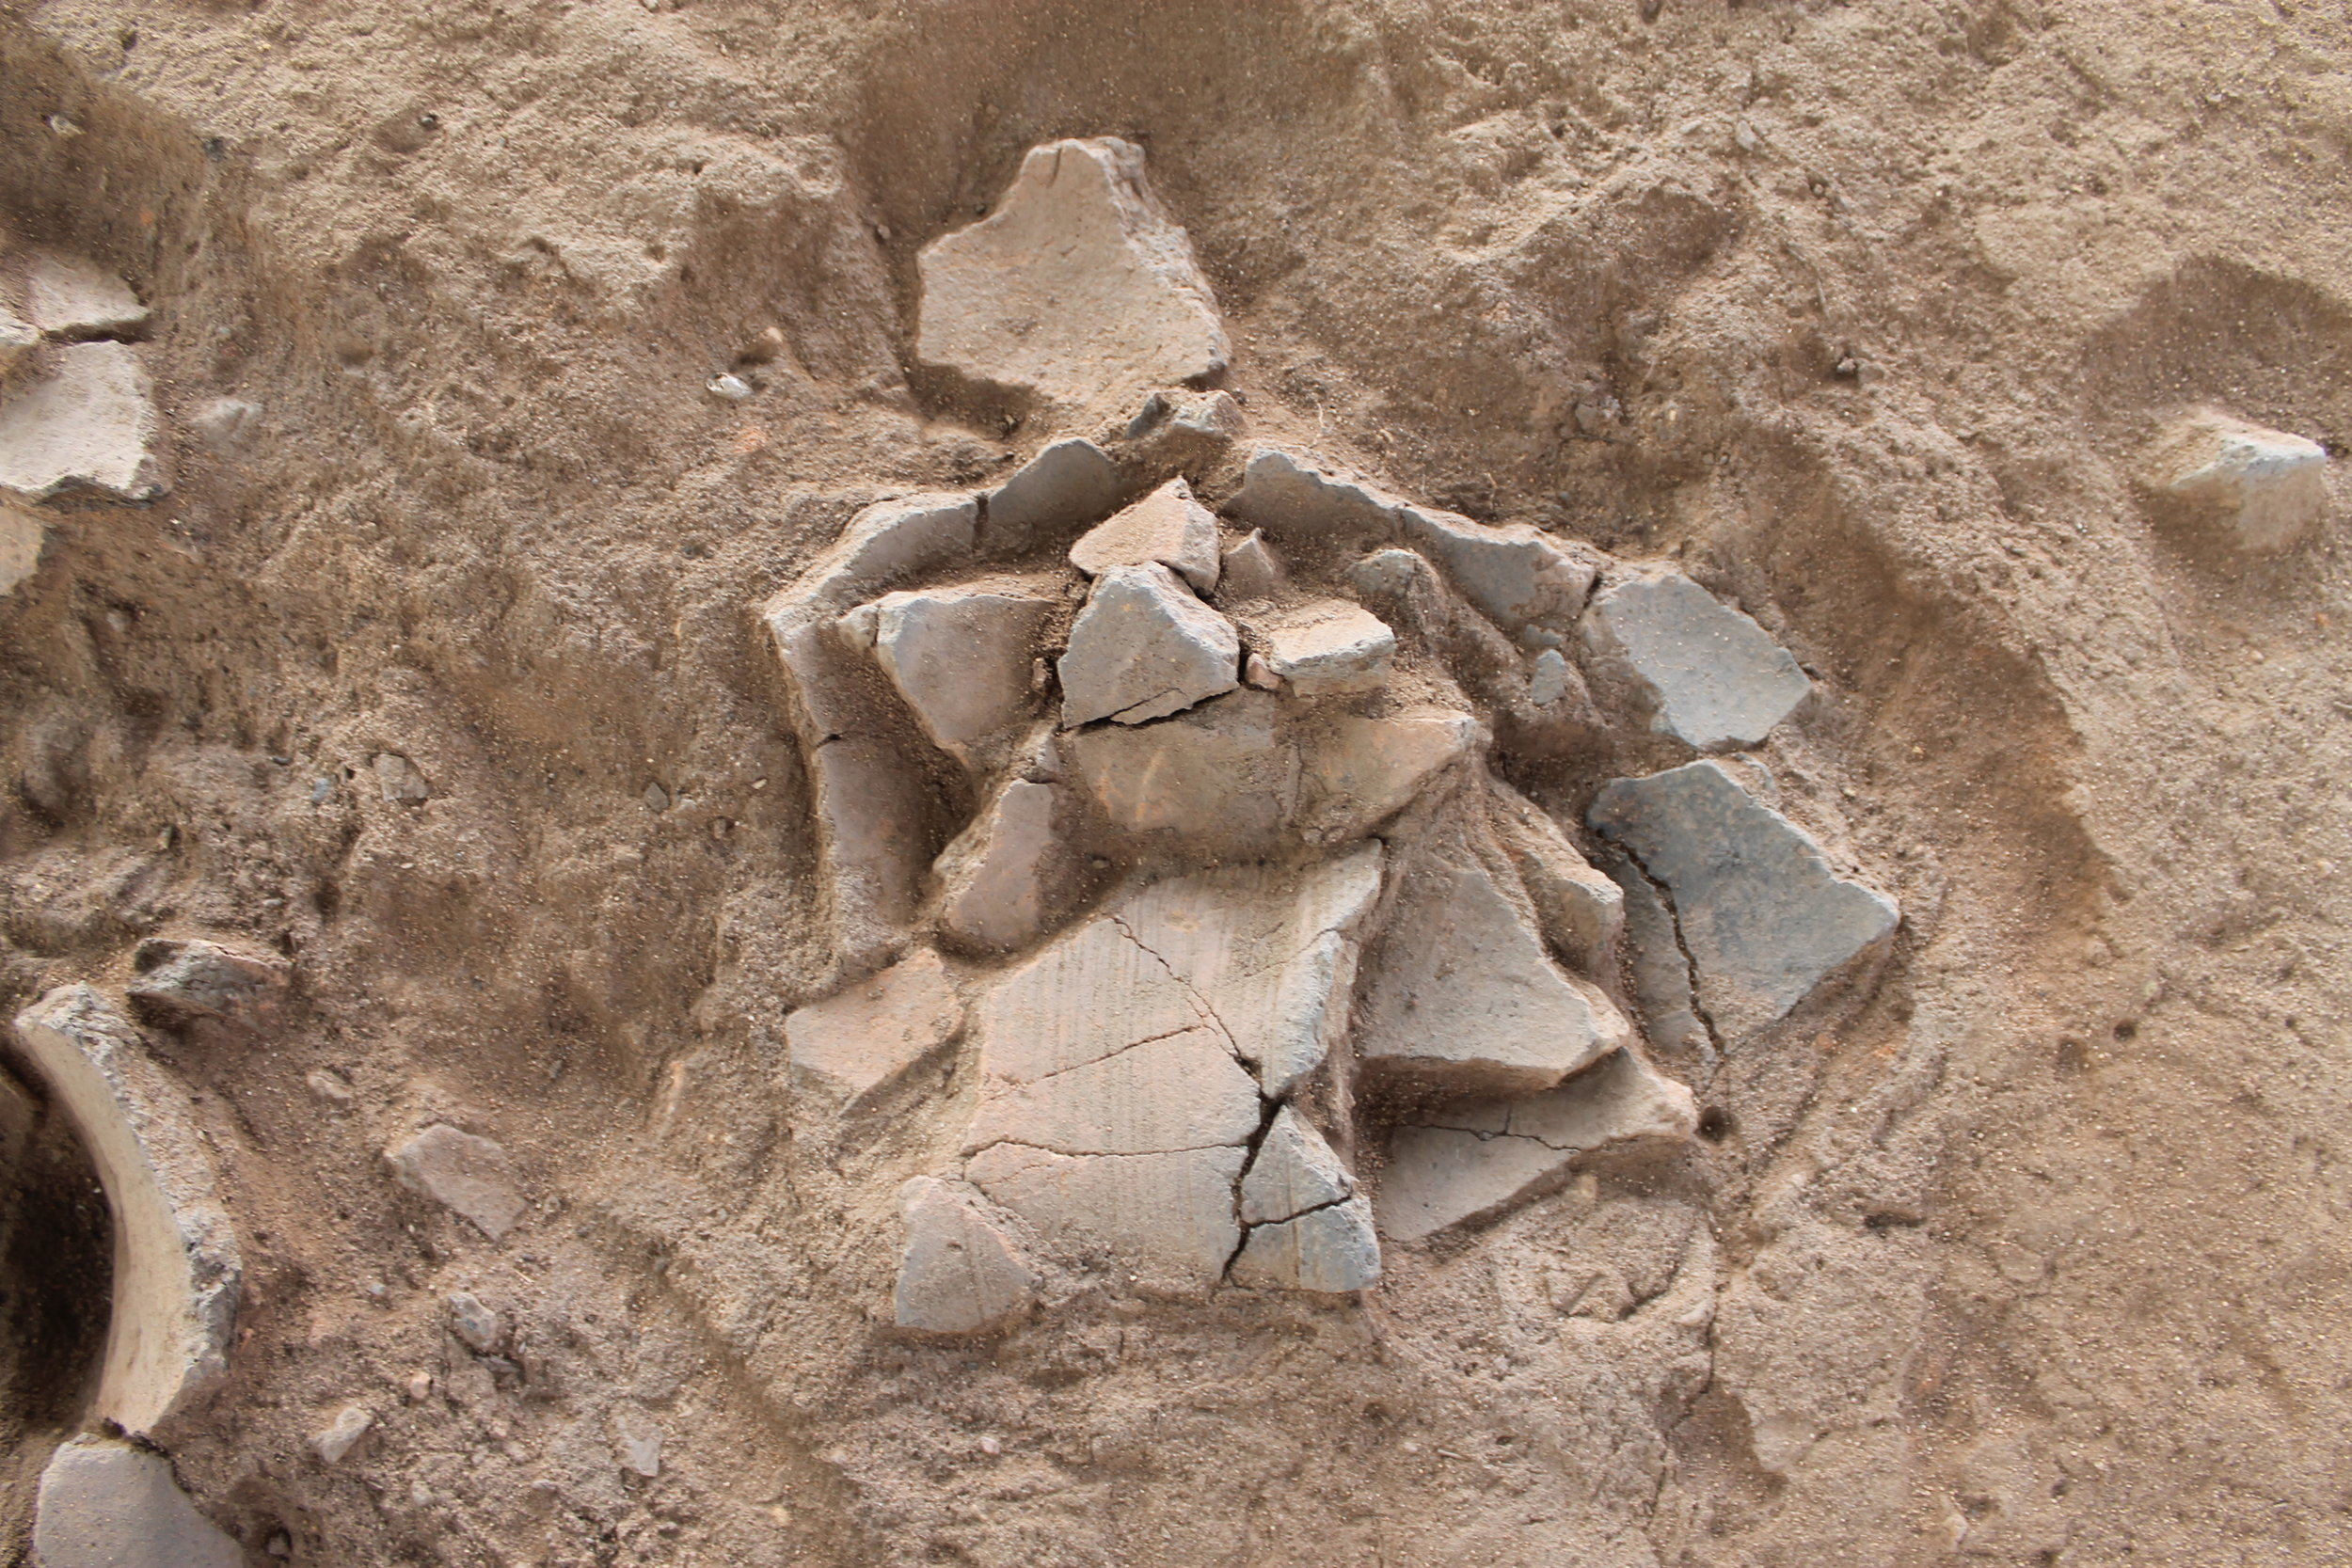 In-situ ceramic clusters at the Early Iron Age site of Chundu Farm in southwestern Zambia.